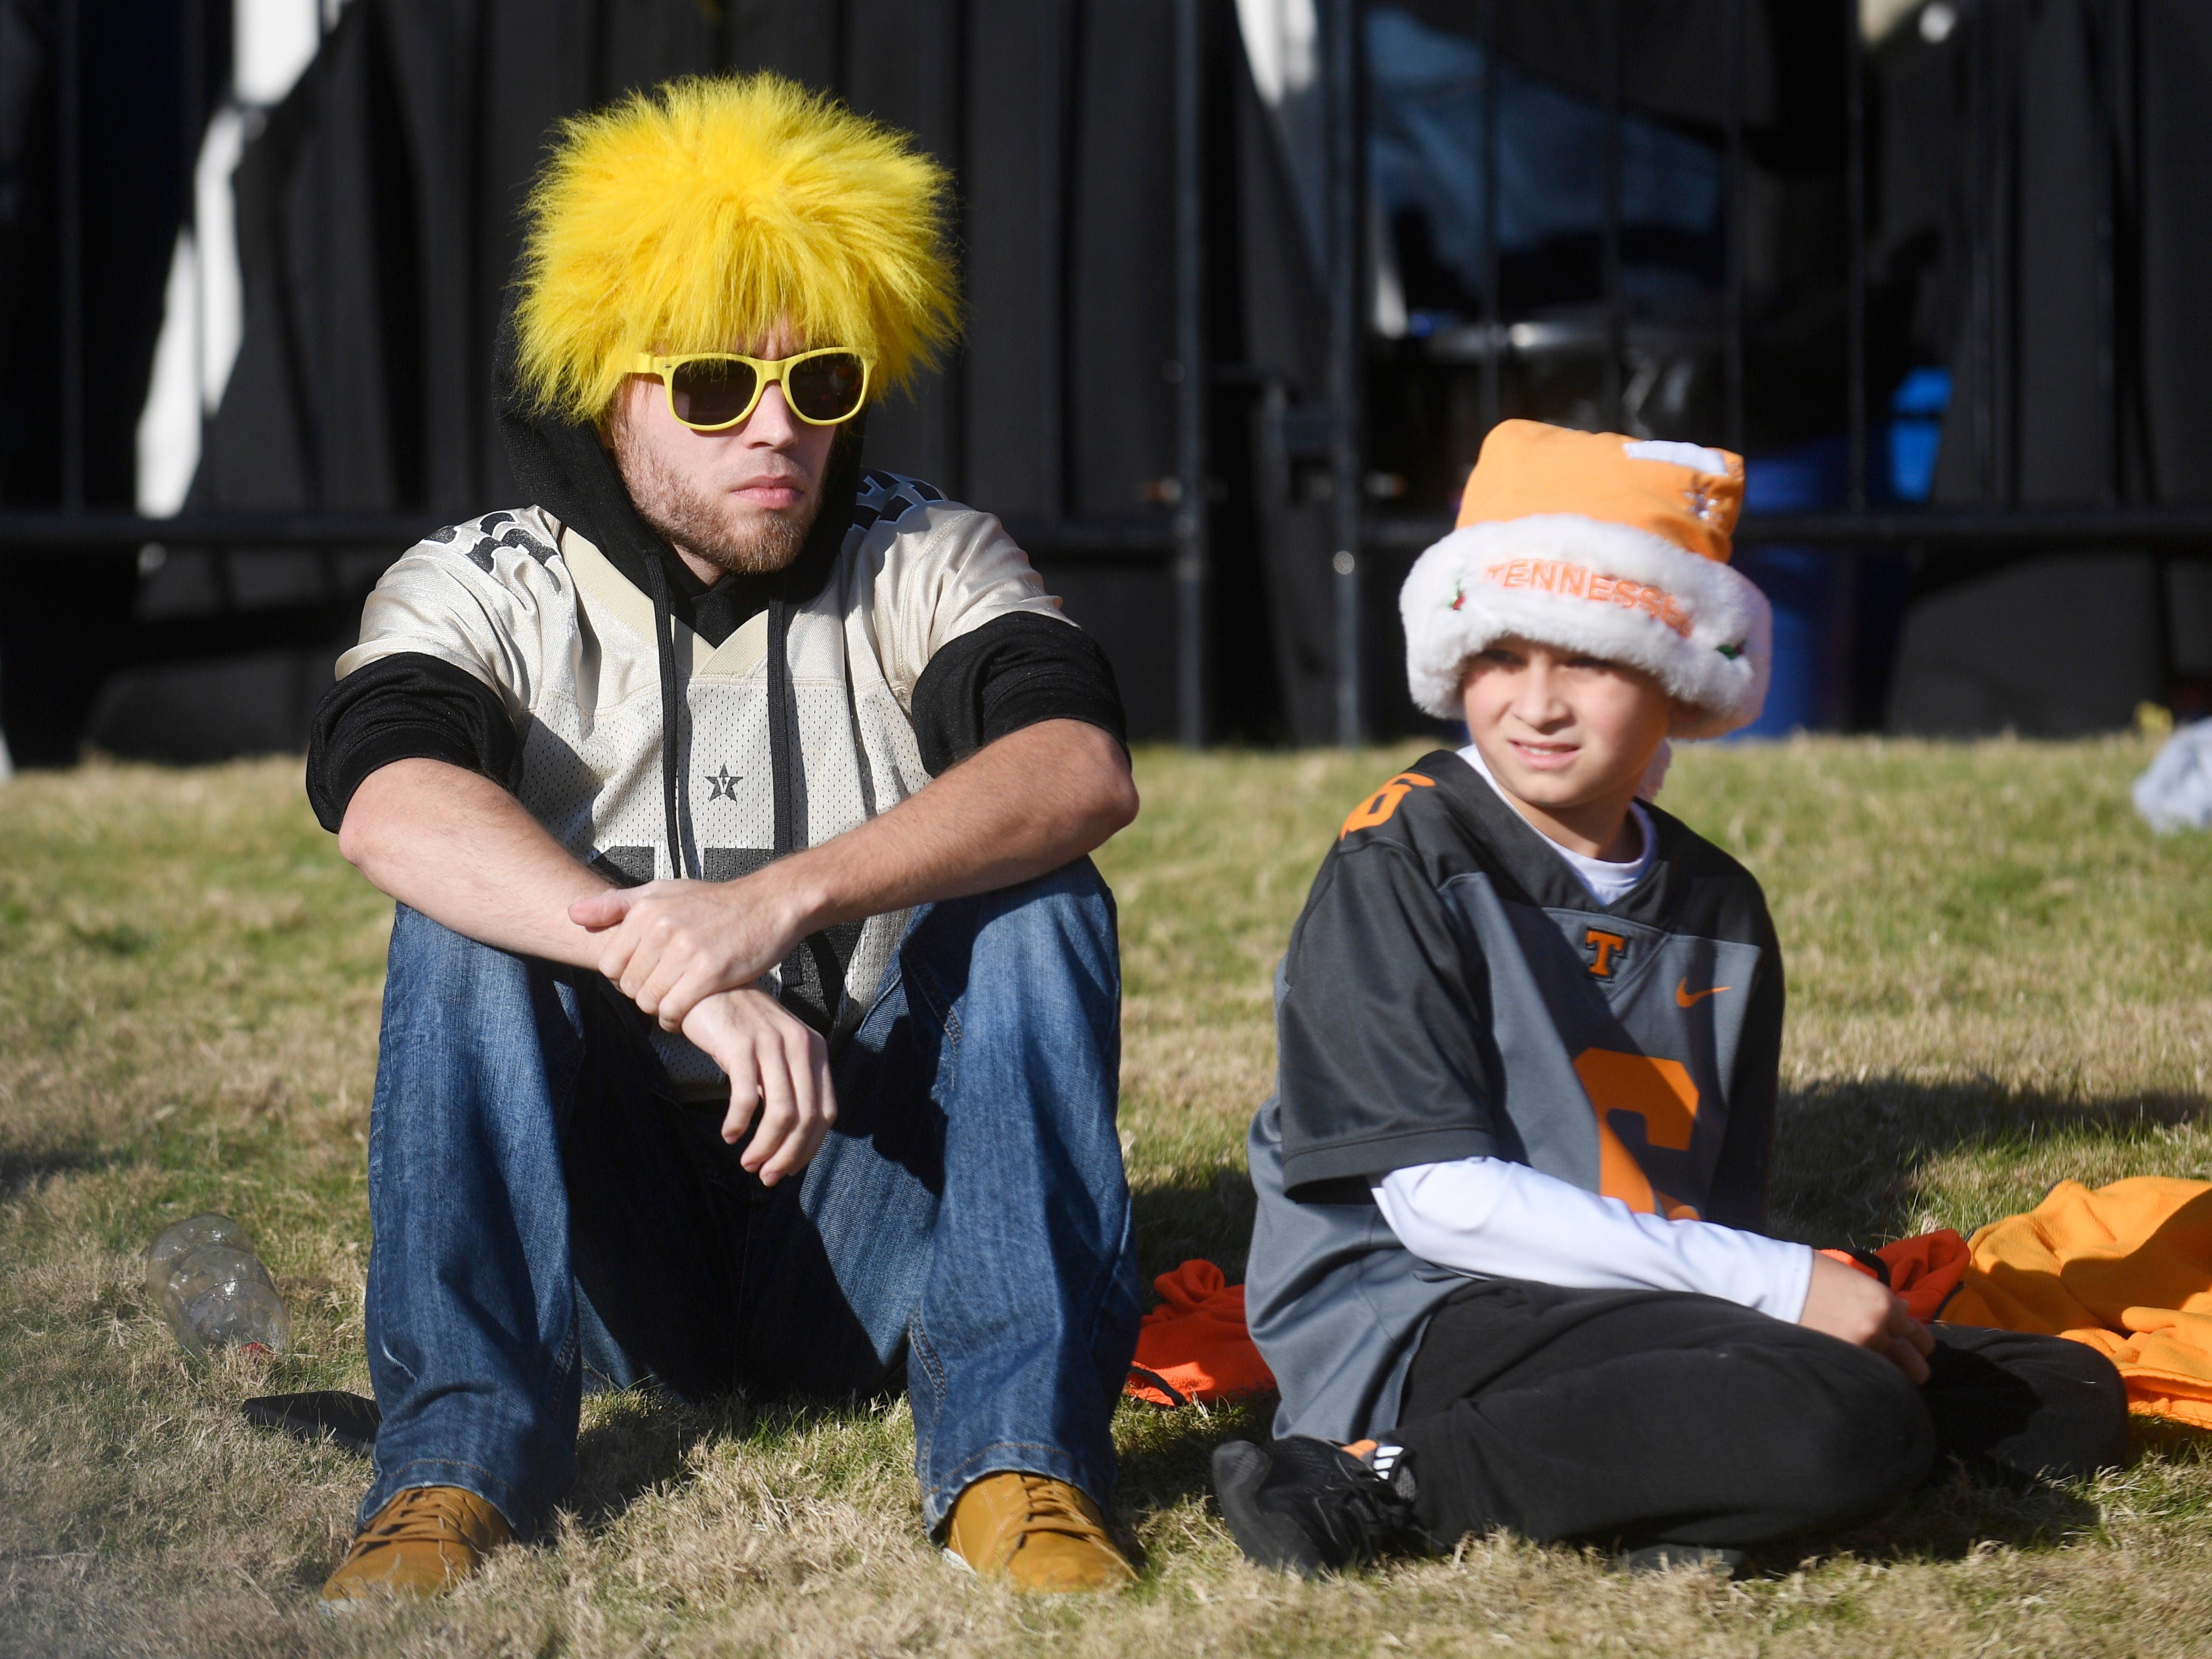 Fans are decked out before the start of the game at Vanderbilt Stadium Saturday, Nov. 24, 2018, in Nashville, Tenn.